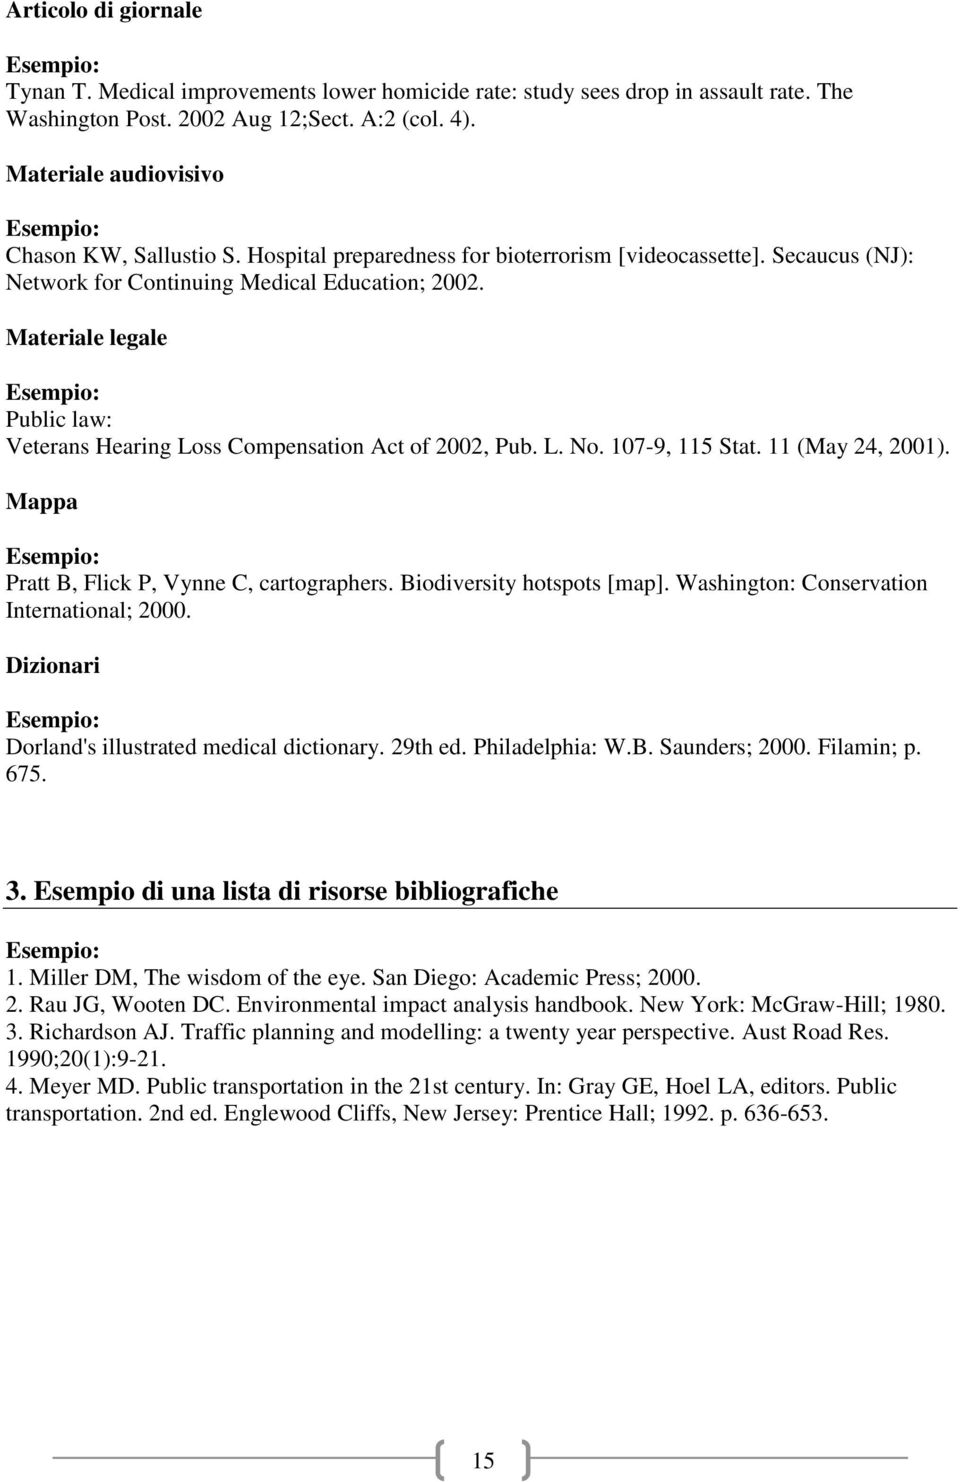 Materiale legale Public law: Veterans Hearing Loss Compensation Act of 2002, Pub. L. No. 107-9, 115 Stat. 11 (May 24, 2001). Mappa Pratt B, Flick P, Vynne C, cartographers.